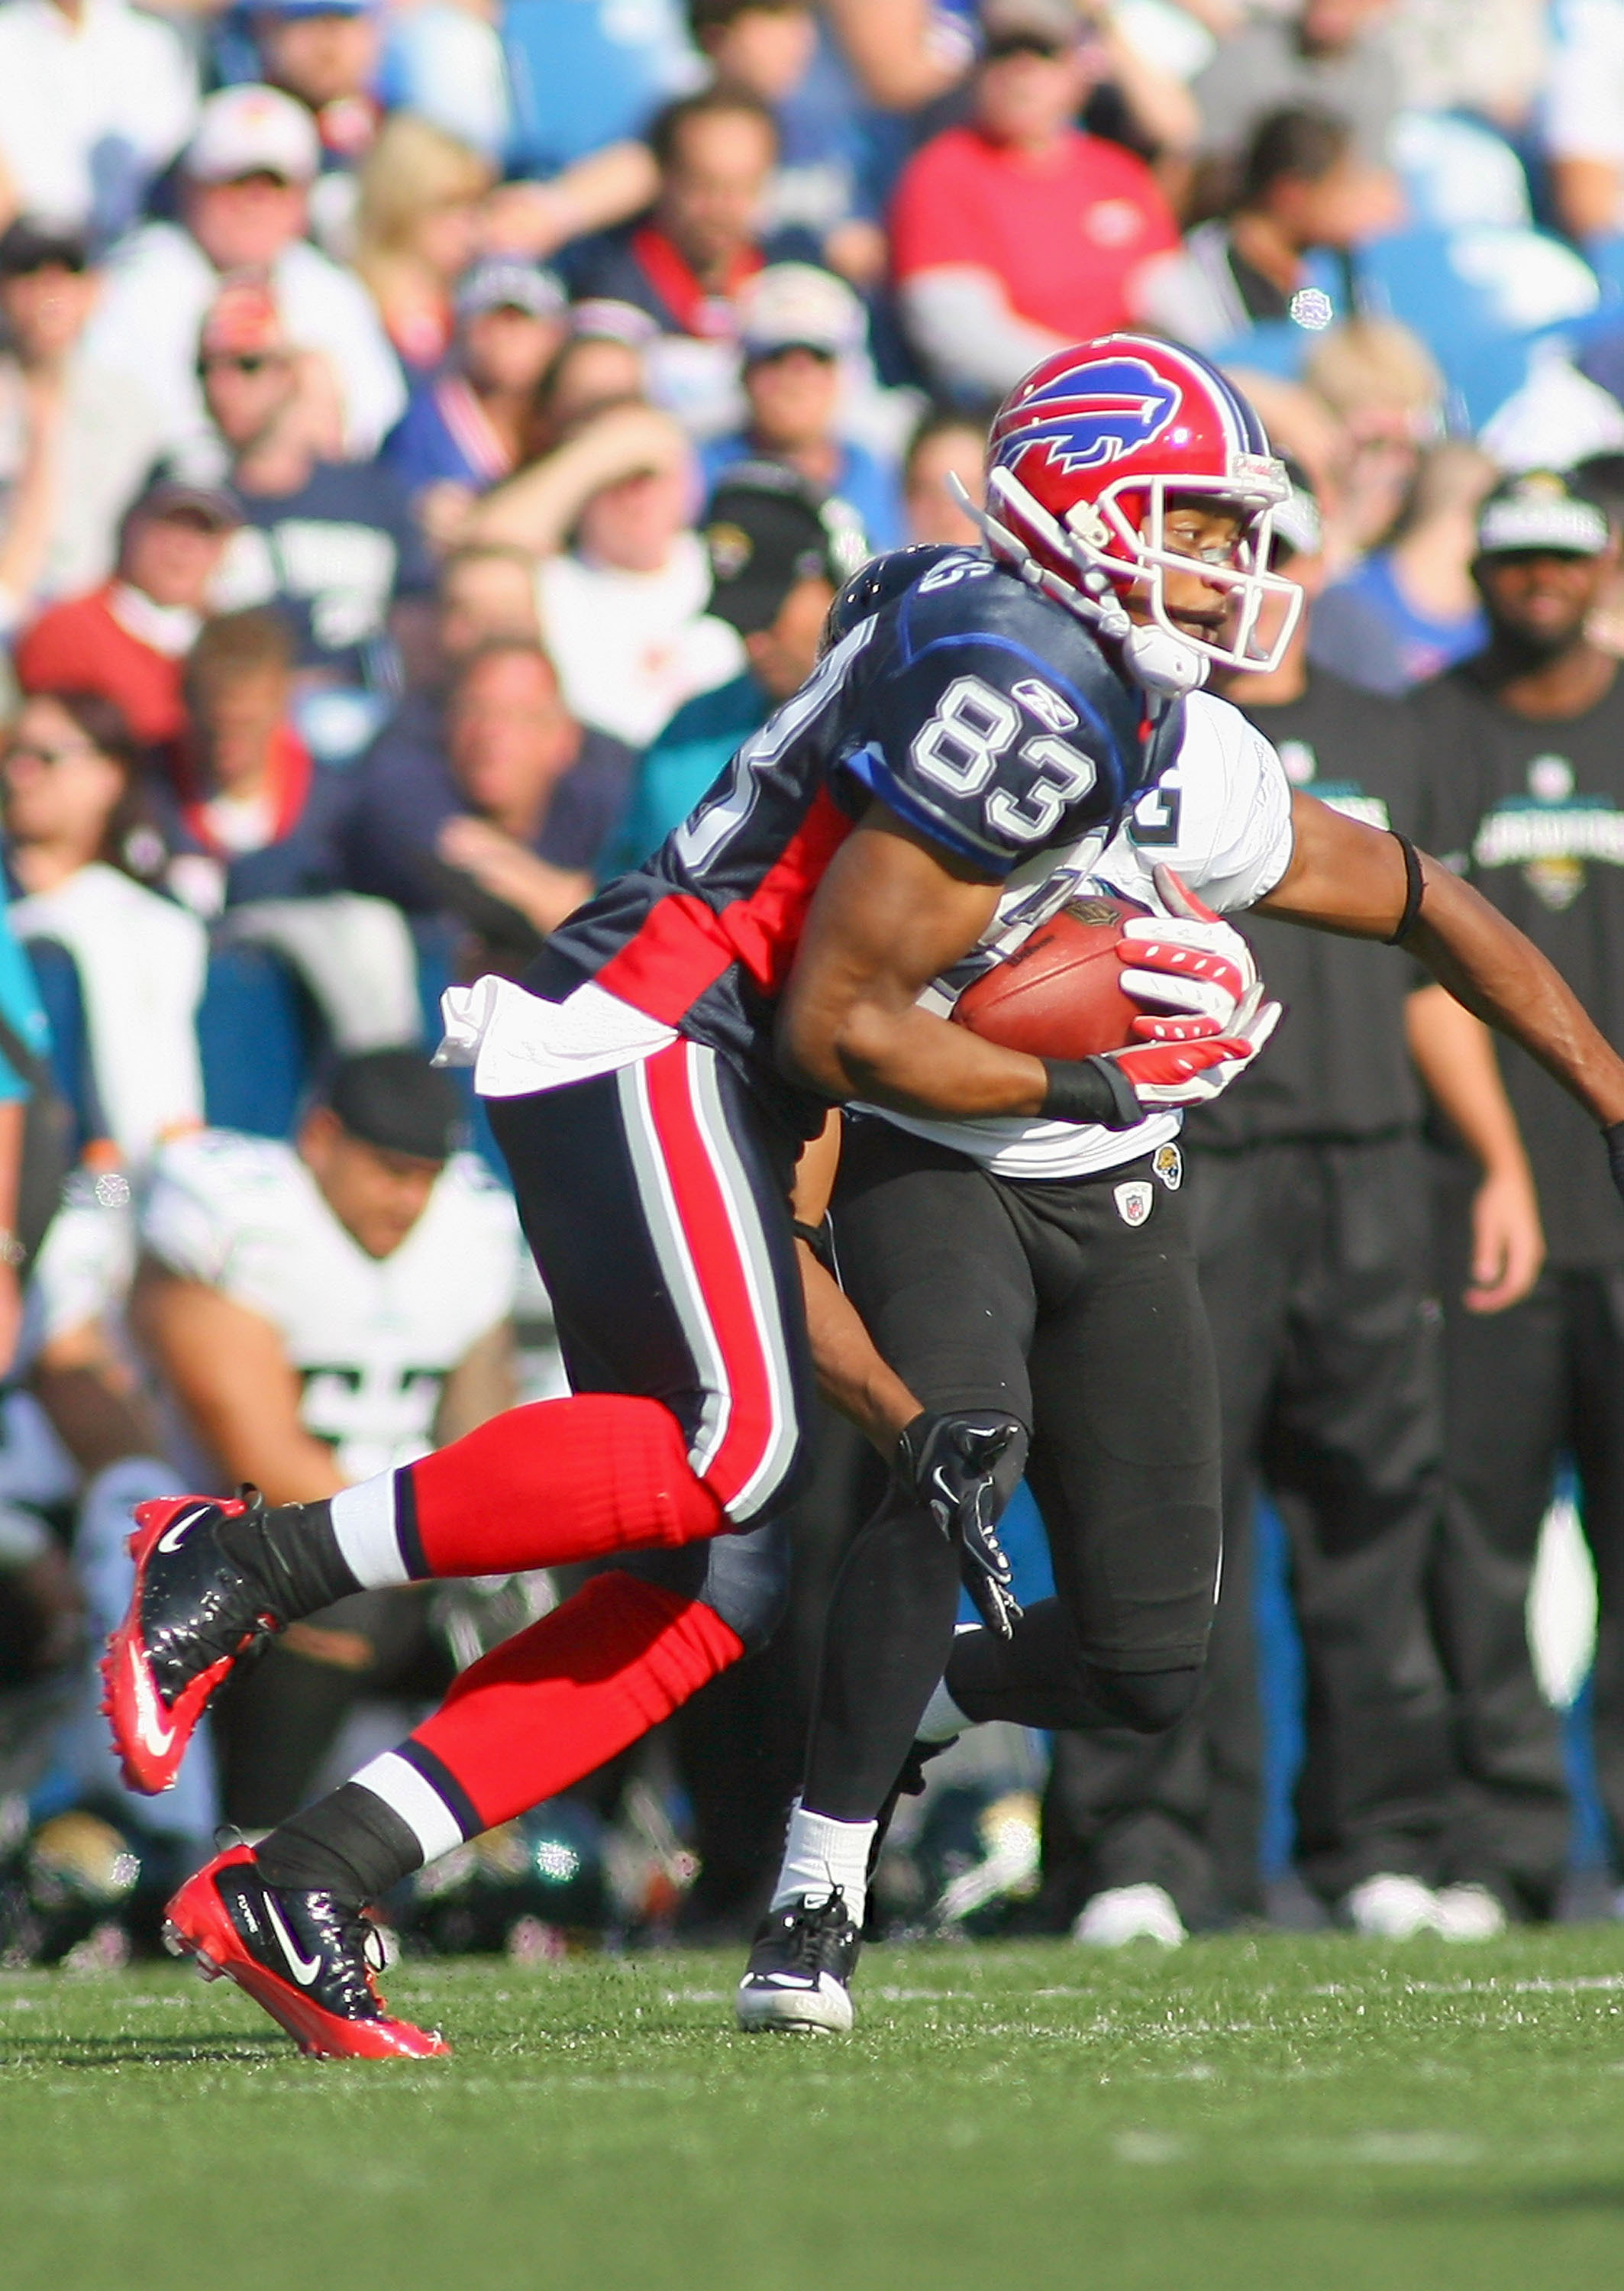 ORCHARD PARK, NY - OCTOBER 10: Lee Evans #83 of the Buffalo Bills makes a catch against the Jacksonville Jaguars at Ralph Wilson Stadium on October 10, 2010 in Orchard Park, New York.  (Photo by Rick Stewart/Getty Images)